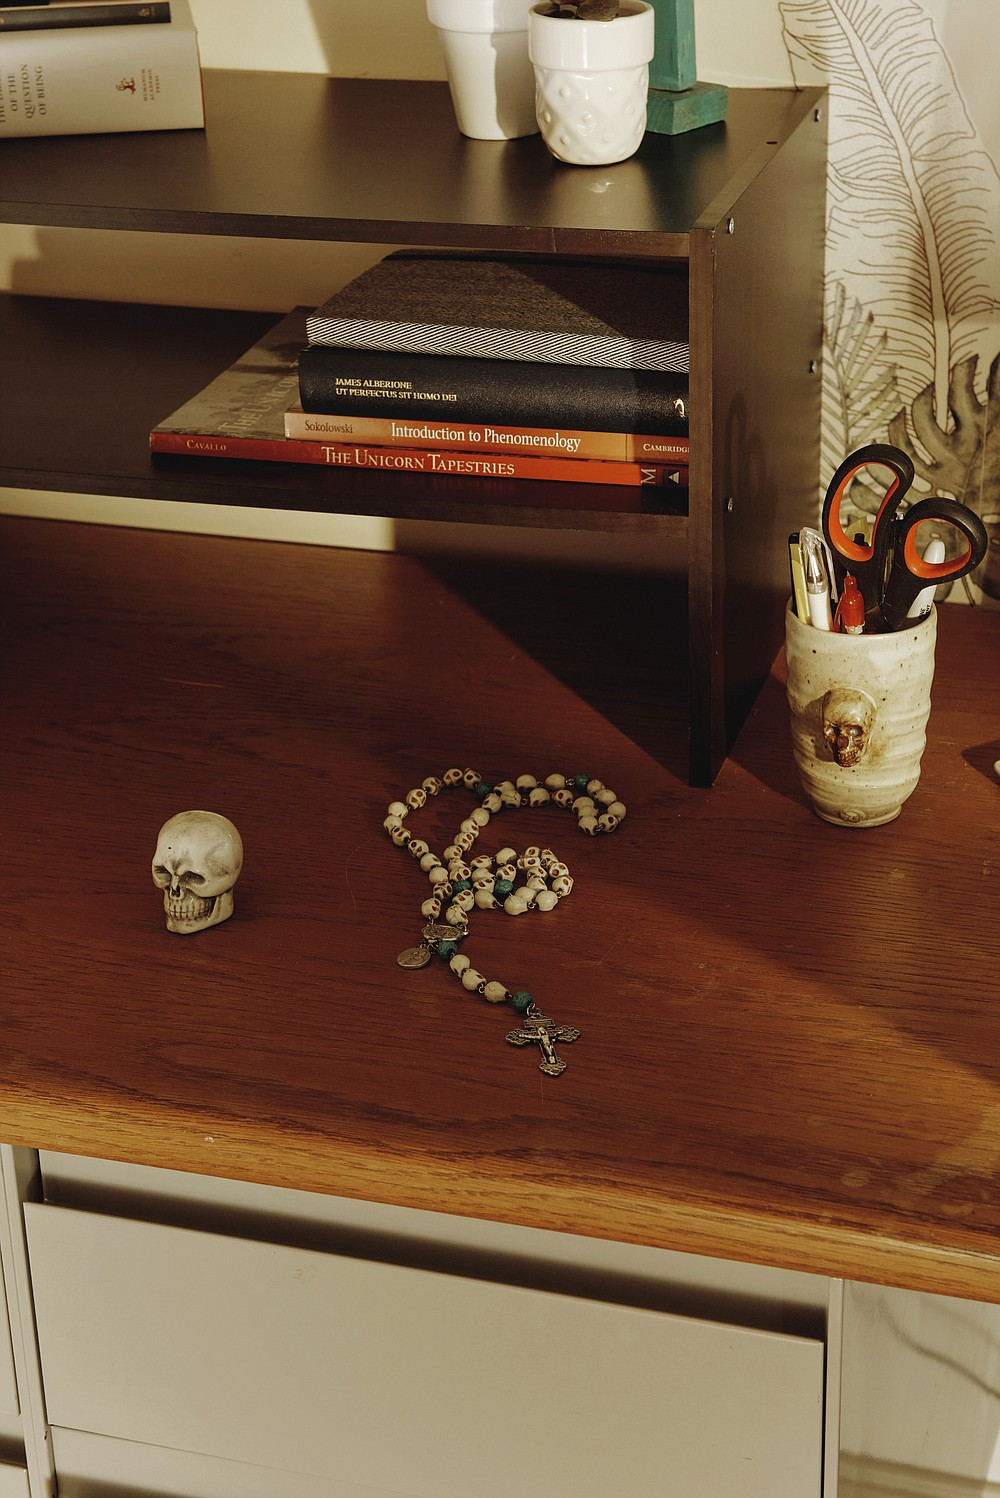 """Items that Sister Theresa Aletheia Noble has collected that incorporate skull imagery, at Daughters of St. Paul convent in Boston, May 12, 2021. Since 2017, Sister Aletheia has made it her mission to revive the practice of memento mori, a Latin phrase meaning """"Remember your death,"""" which encourages intentional thought about one's death every day as a means of appreciating the present and focusing on the future. (Tony Luong/The New York Times)"""